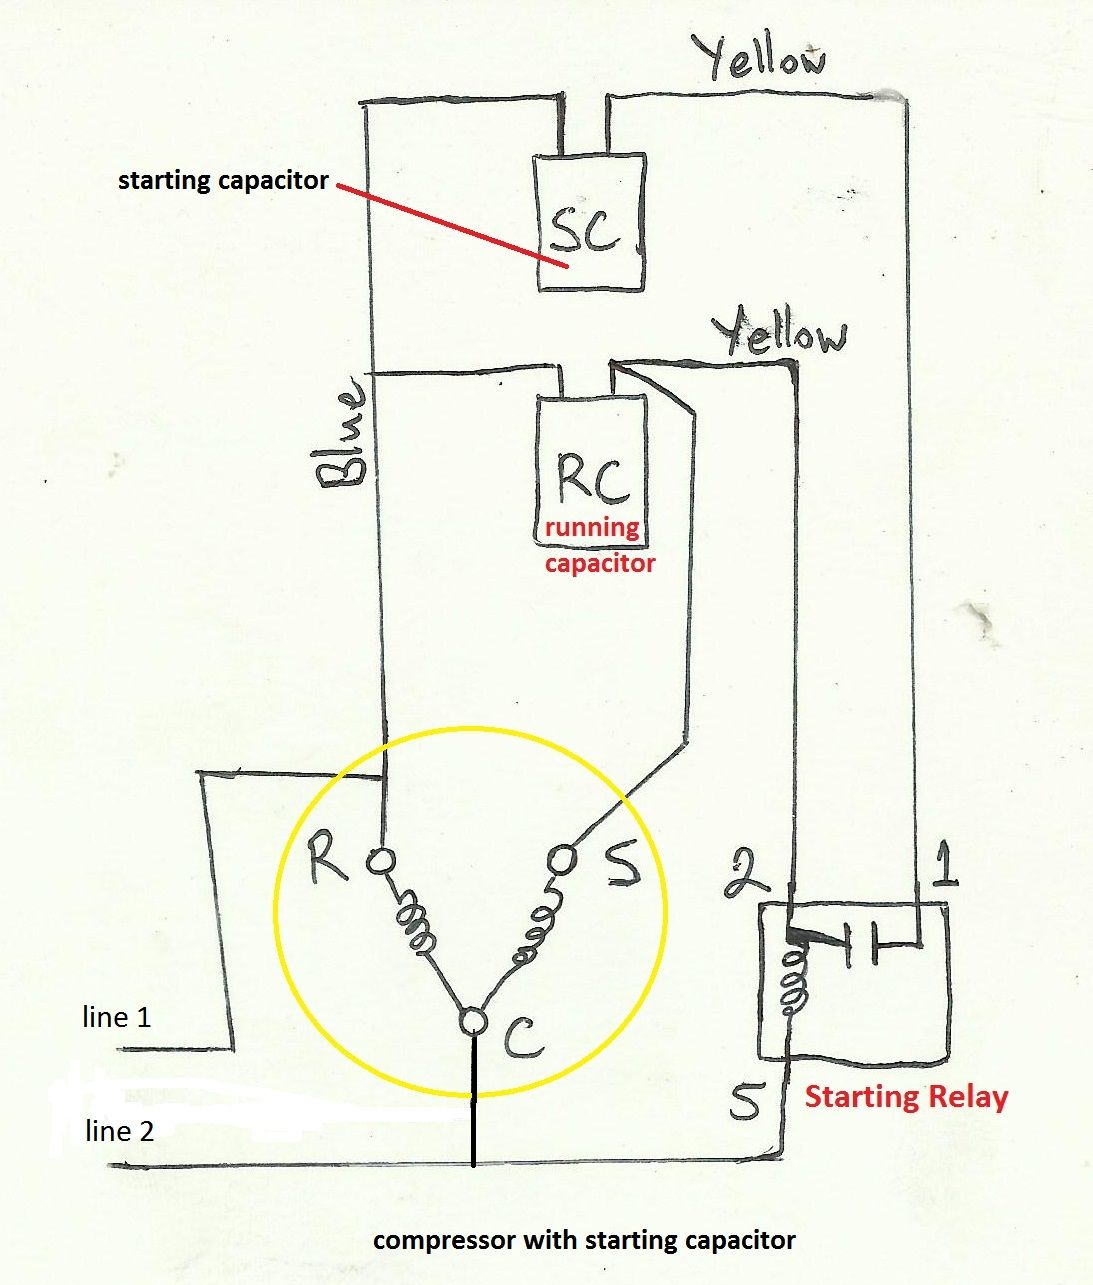 Wiring Diagram For Bristol Compressor - Emg Hz Wiring Diagram Color for Wiring  Diagram SchematicsWiring Diagram Schematics